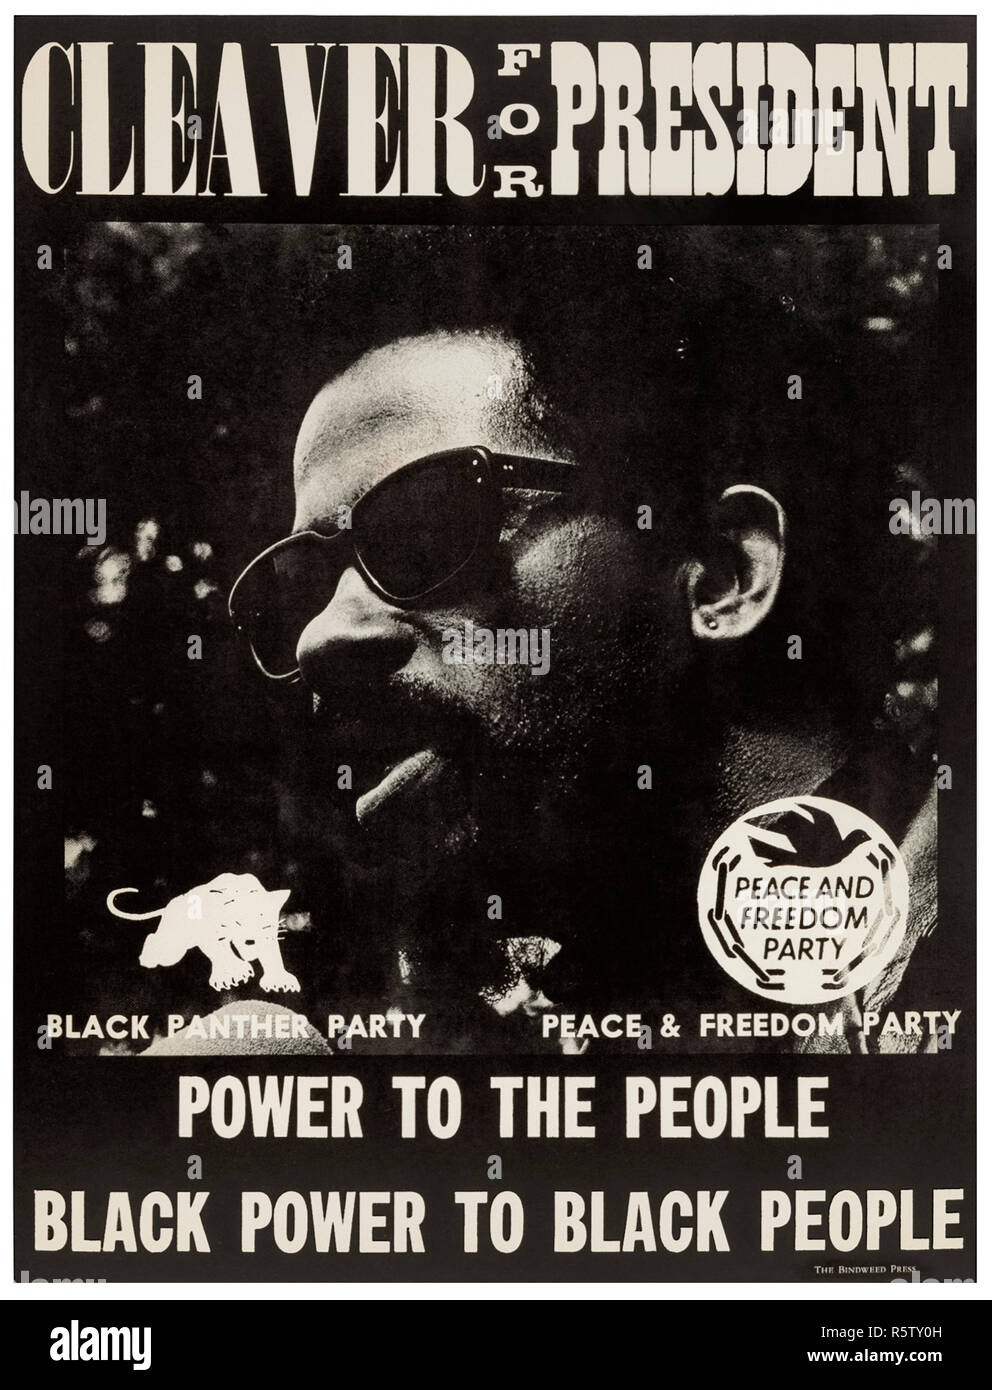 'Cleaver for President – Power to the People – Black Power to Black People' 1968 presidential campaign poster for Eldridge Cleaver (1935-1998) leader of the Black Panther Party who stood on an anti-Vietnam war, black liberation candidate for the Peace and Freedom Party. See more information below. - Stock Image